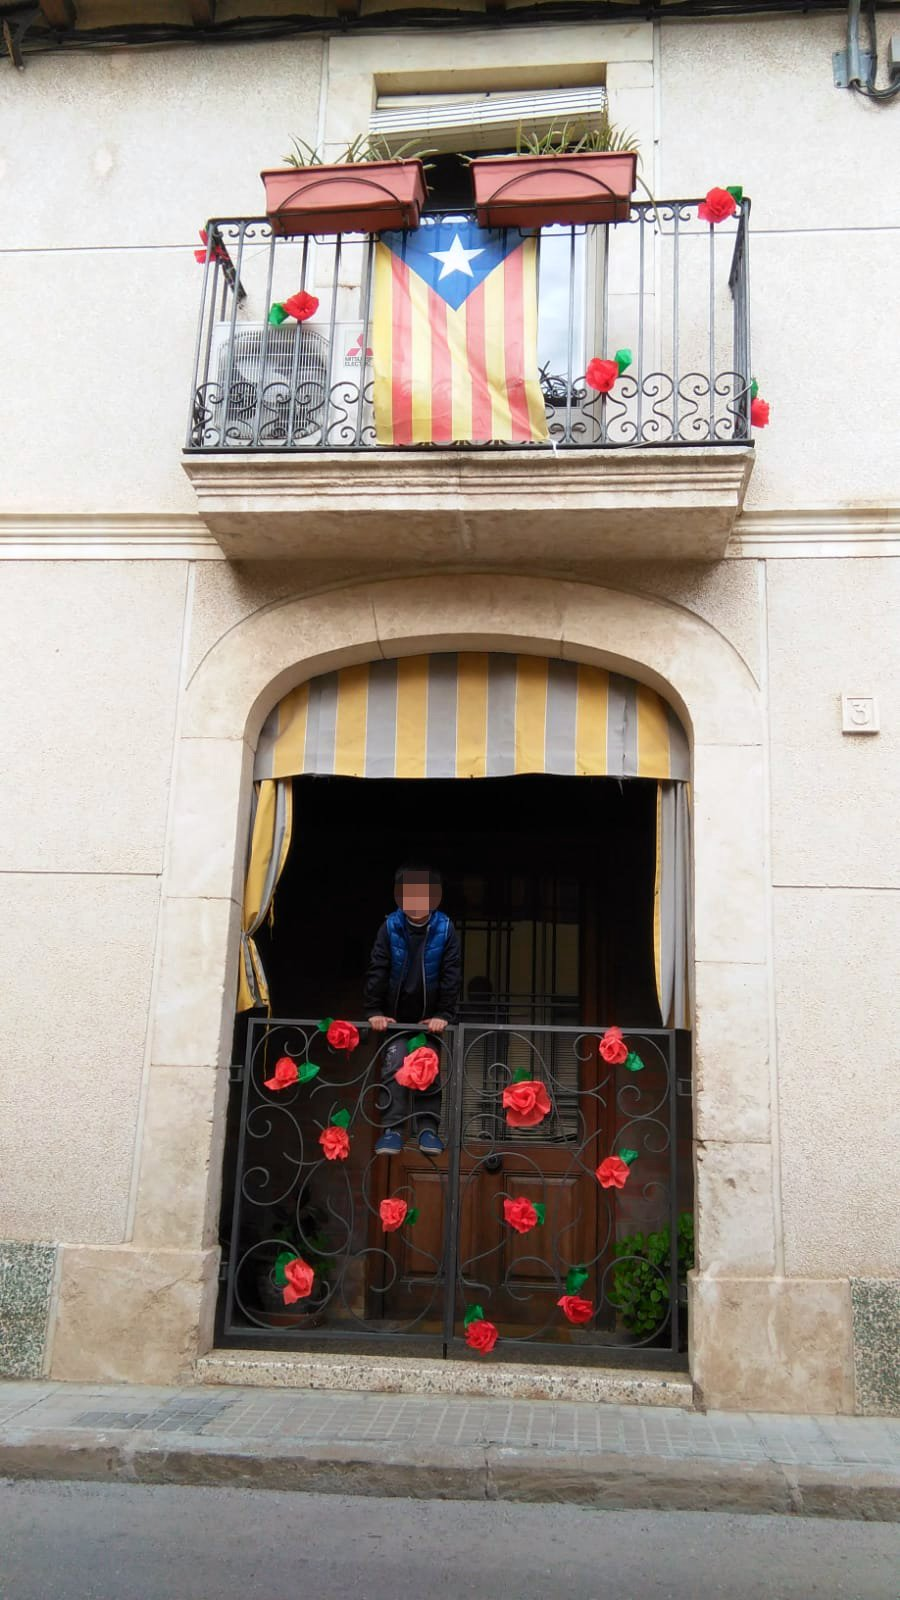 G- 2021 - Sant Jordi- Balcons Guarnits - 11